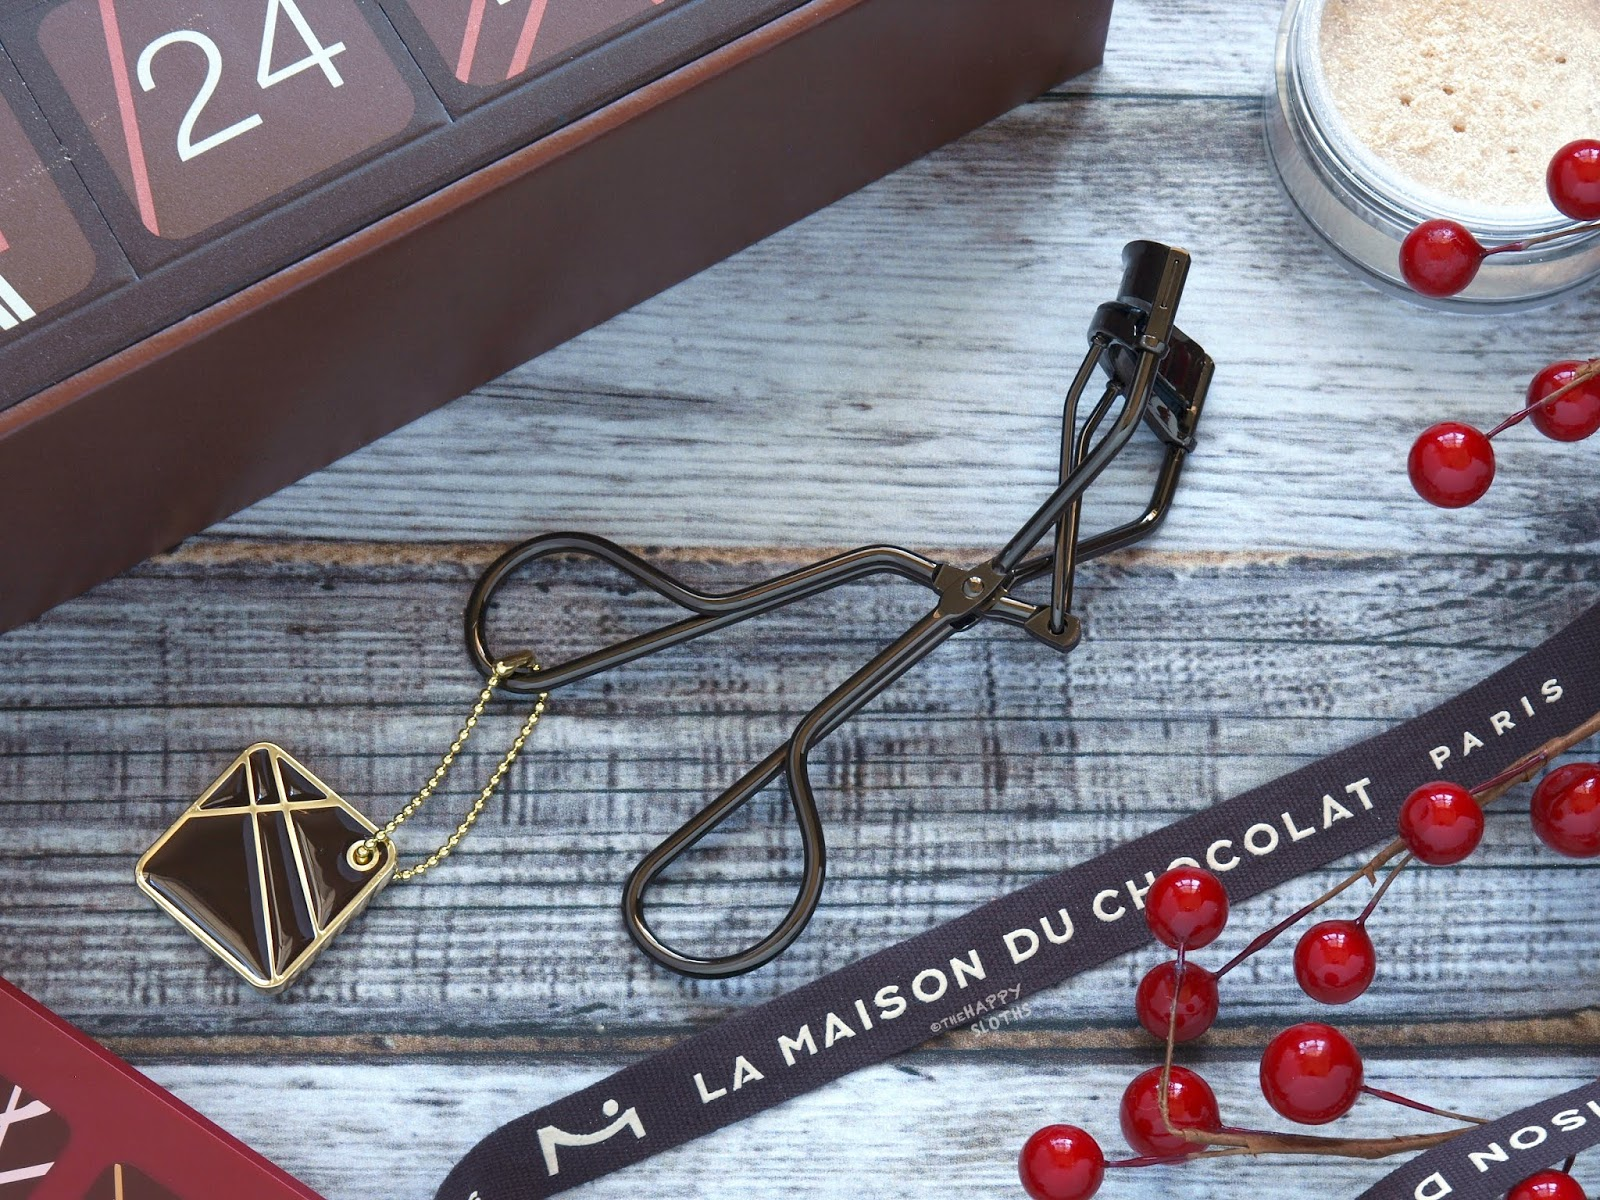 Shu Uemura | Holiday 2018 La Maison du Chocolat Collection | Chocolate Topped Premium Curler: Review